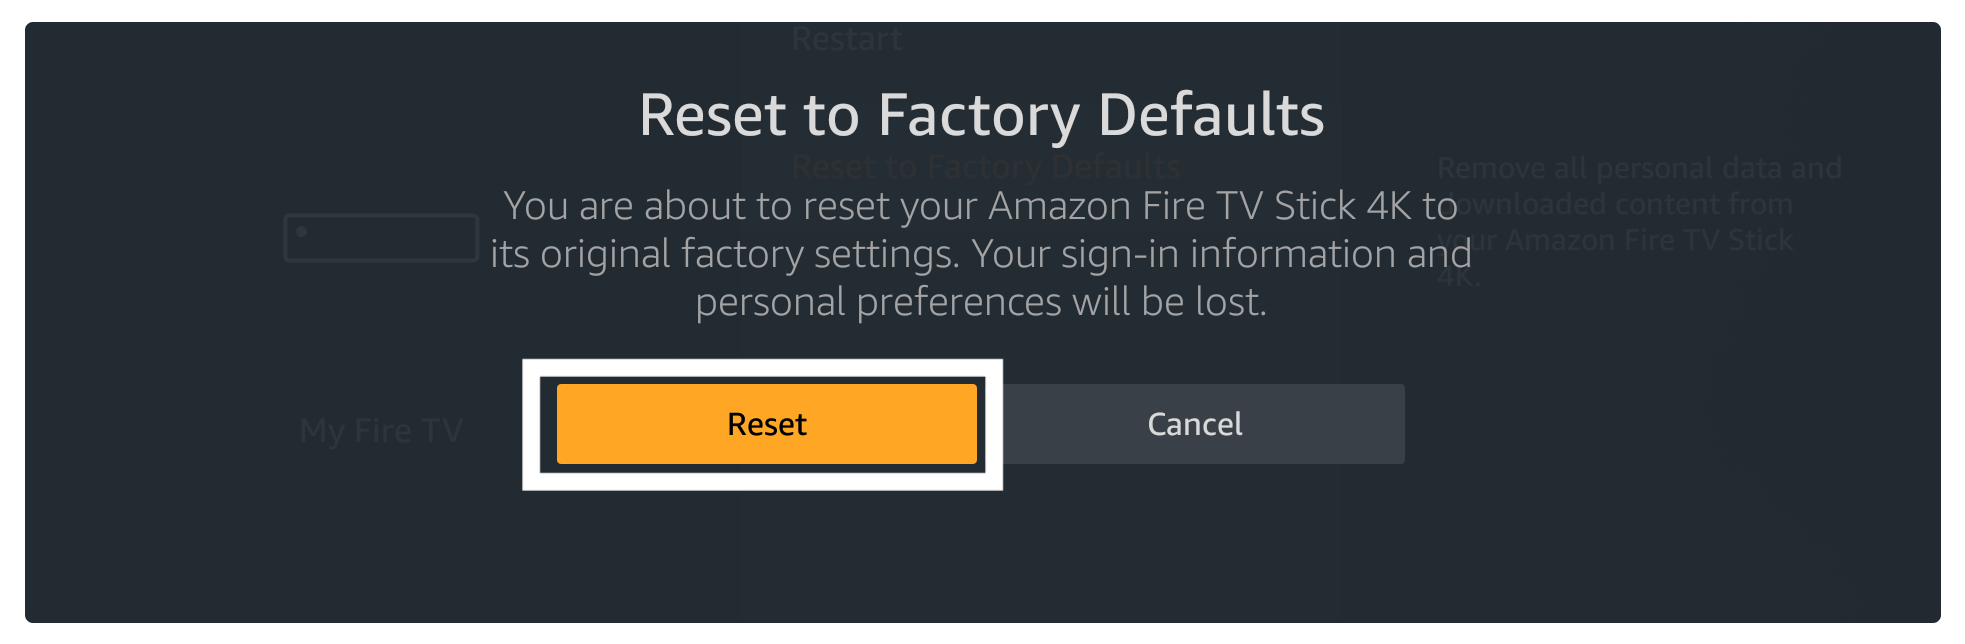 Firestick-Home-Is-Currently-Unavailable